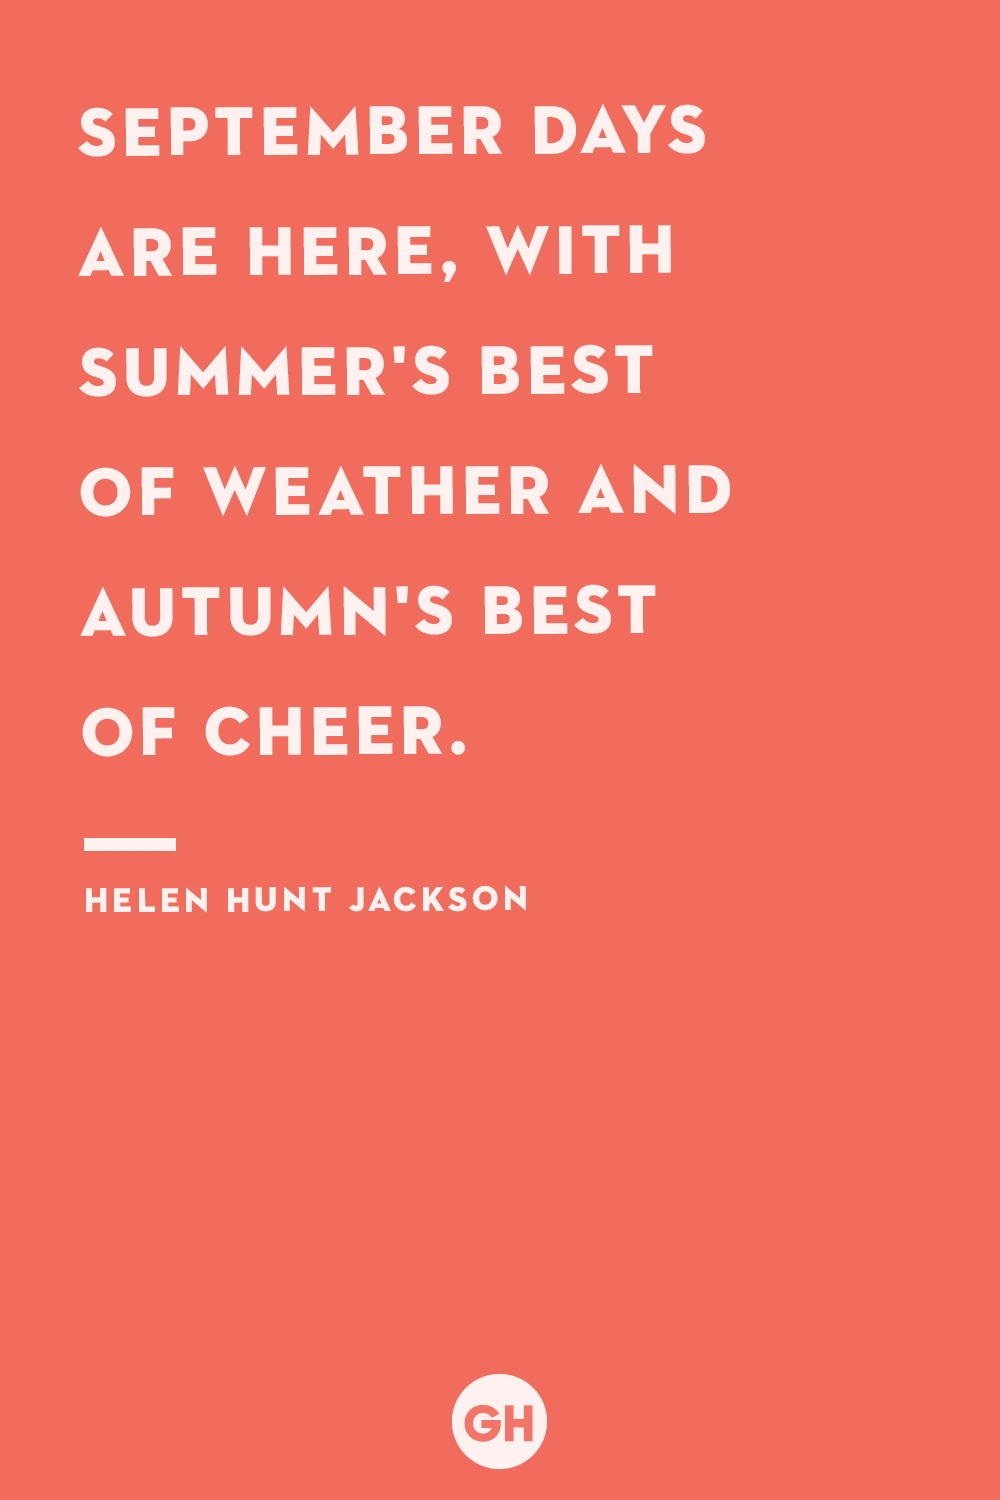 50 Best Fall Quotes - Fun Sayings About Autumn